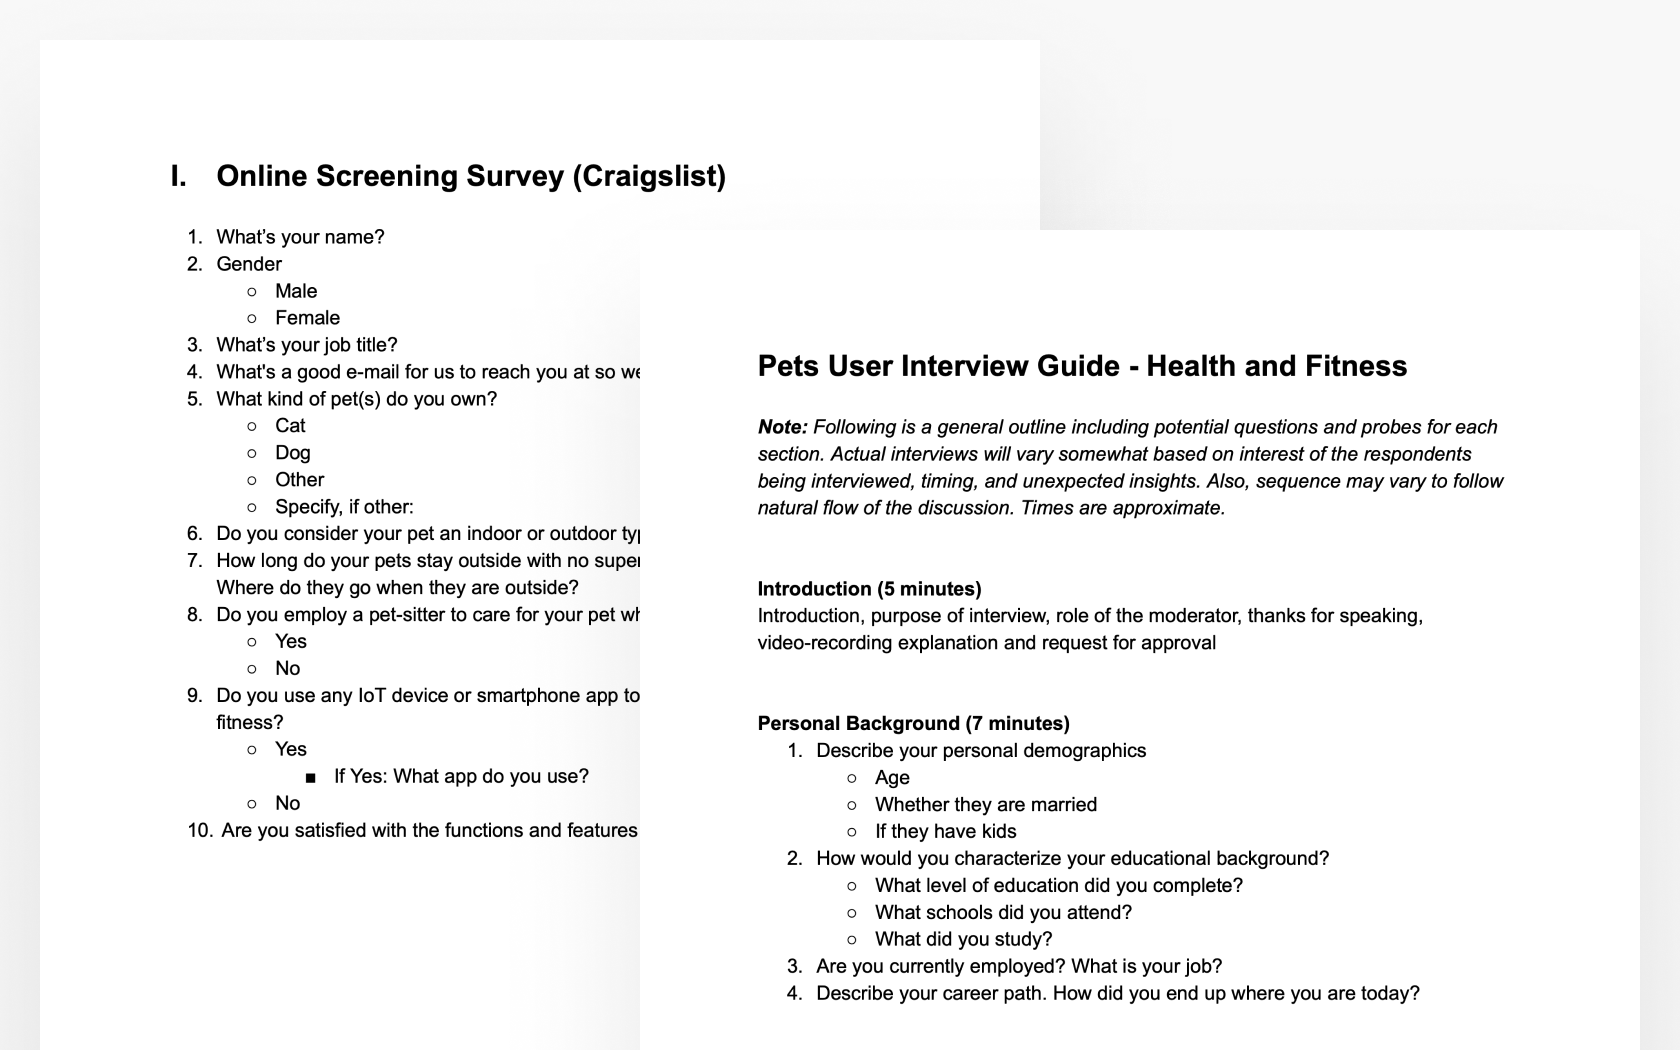 survey_and_guide